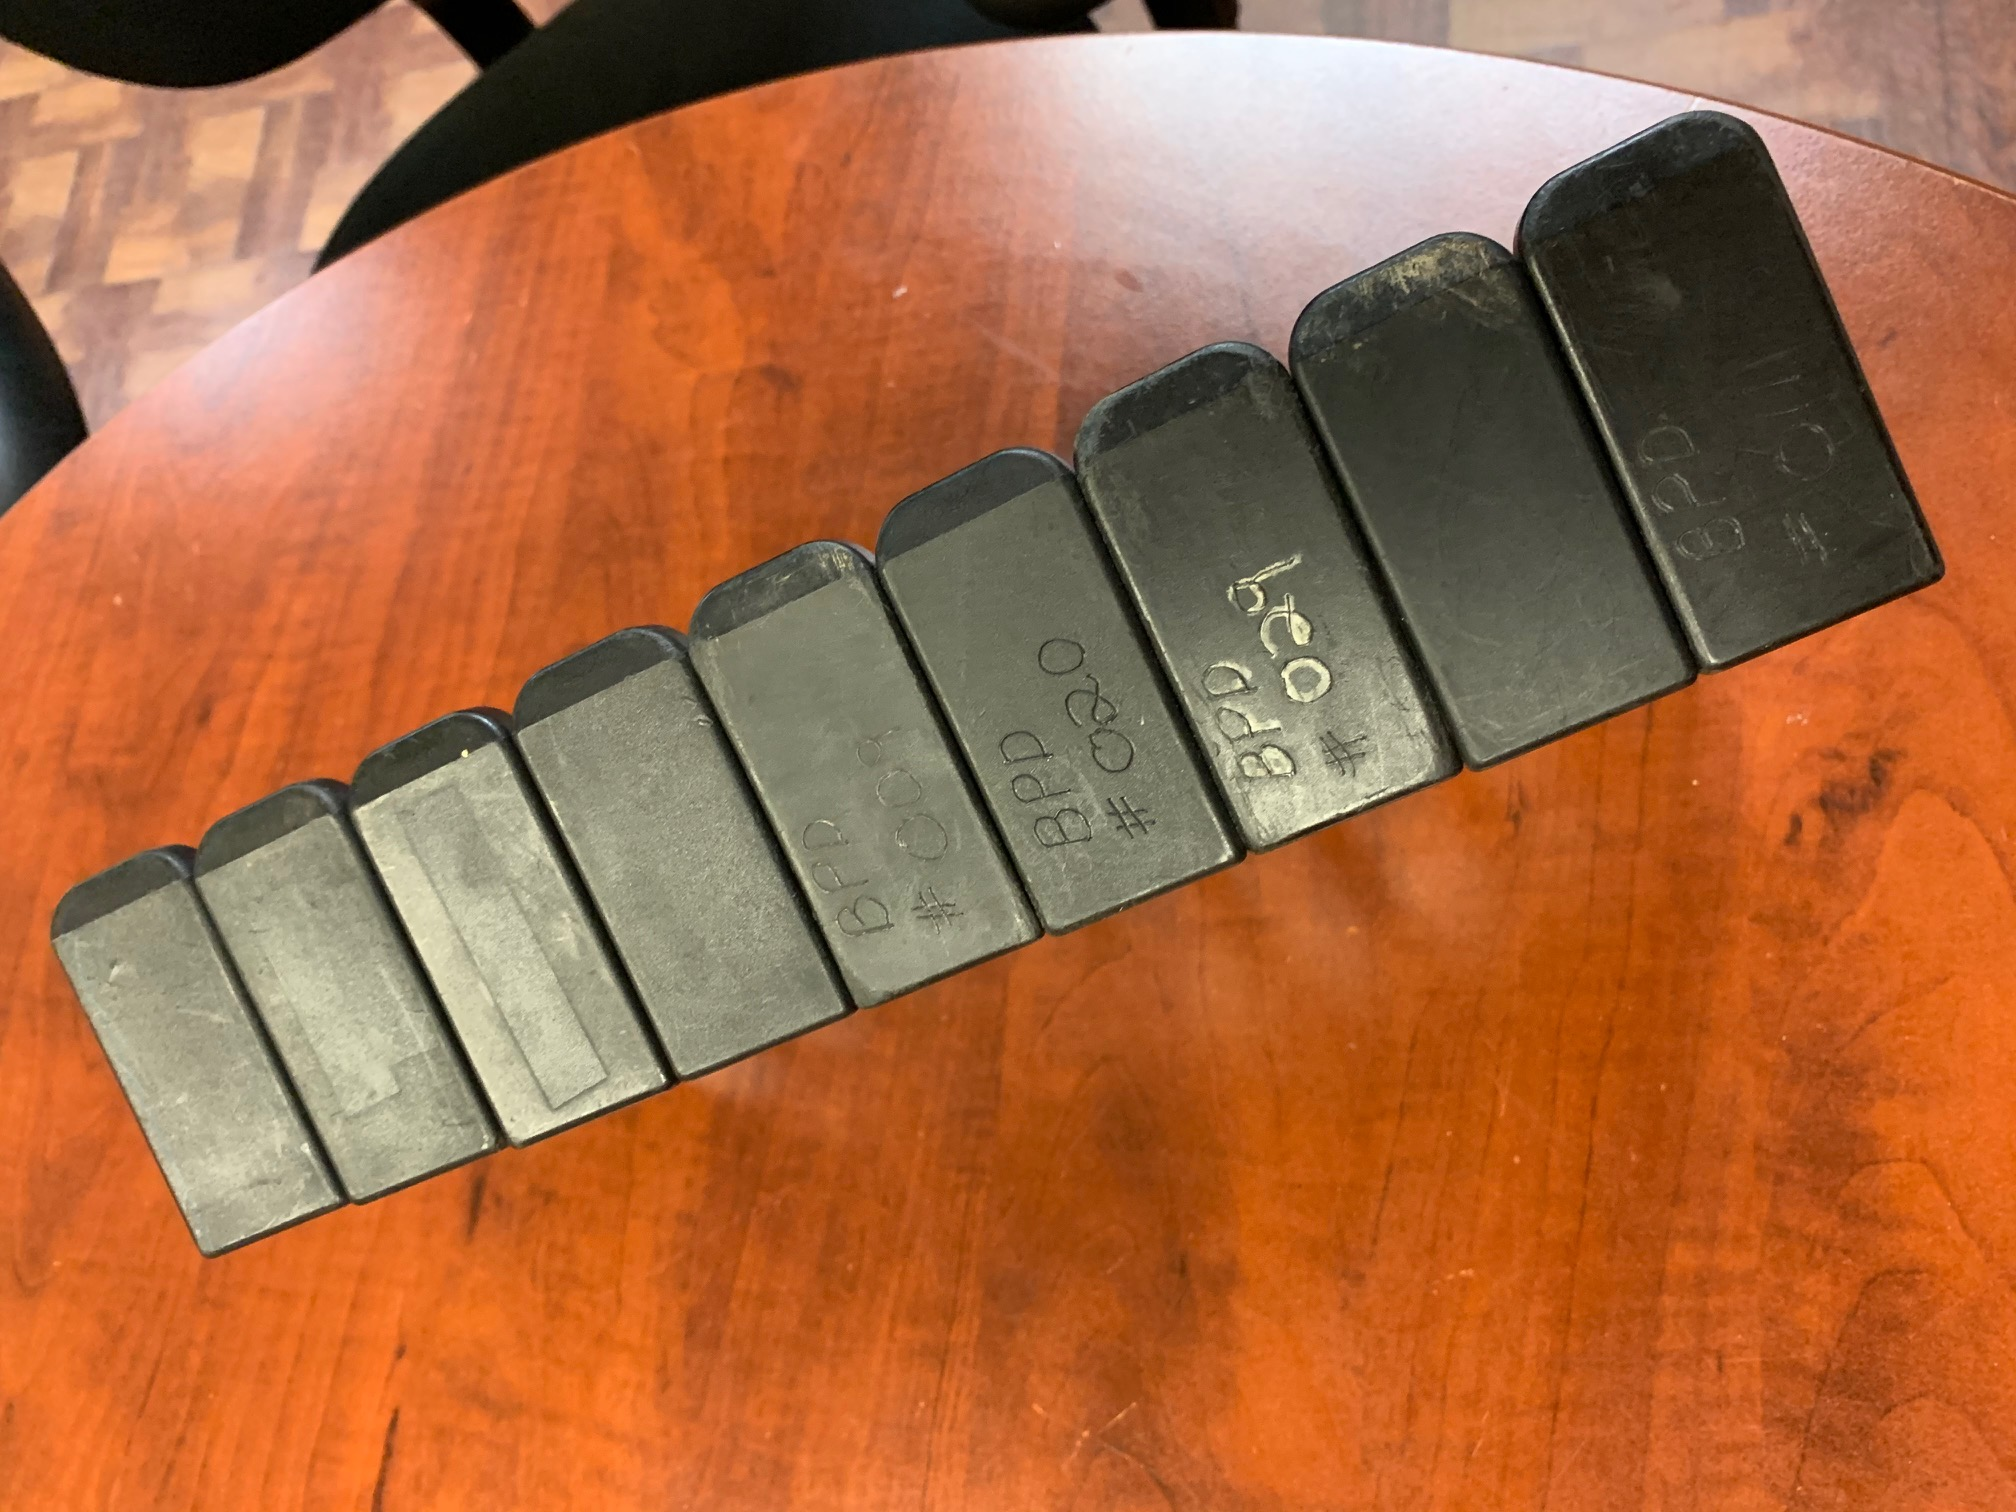 WTS: G36 magazines, MP5 carriers, trigger housings, stocks, pins, parts-img_0563.jpg